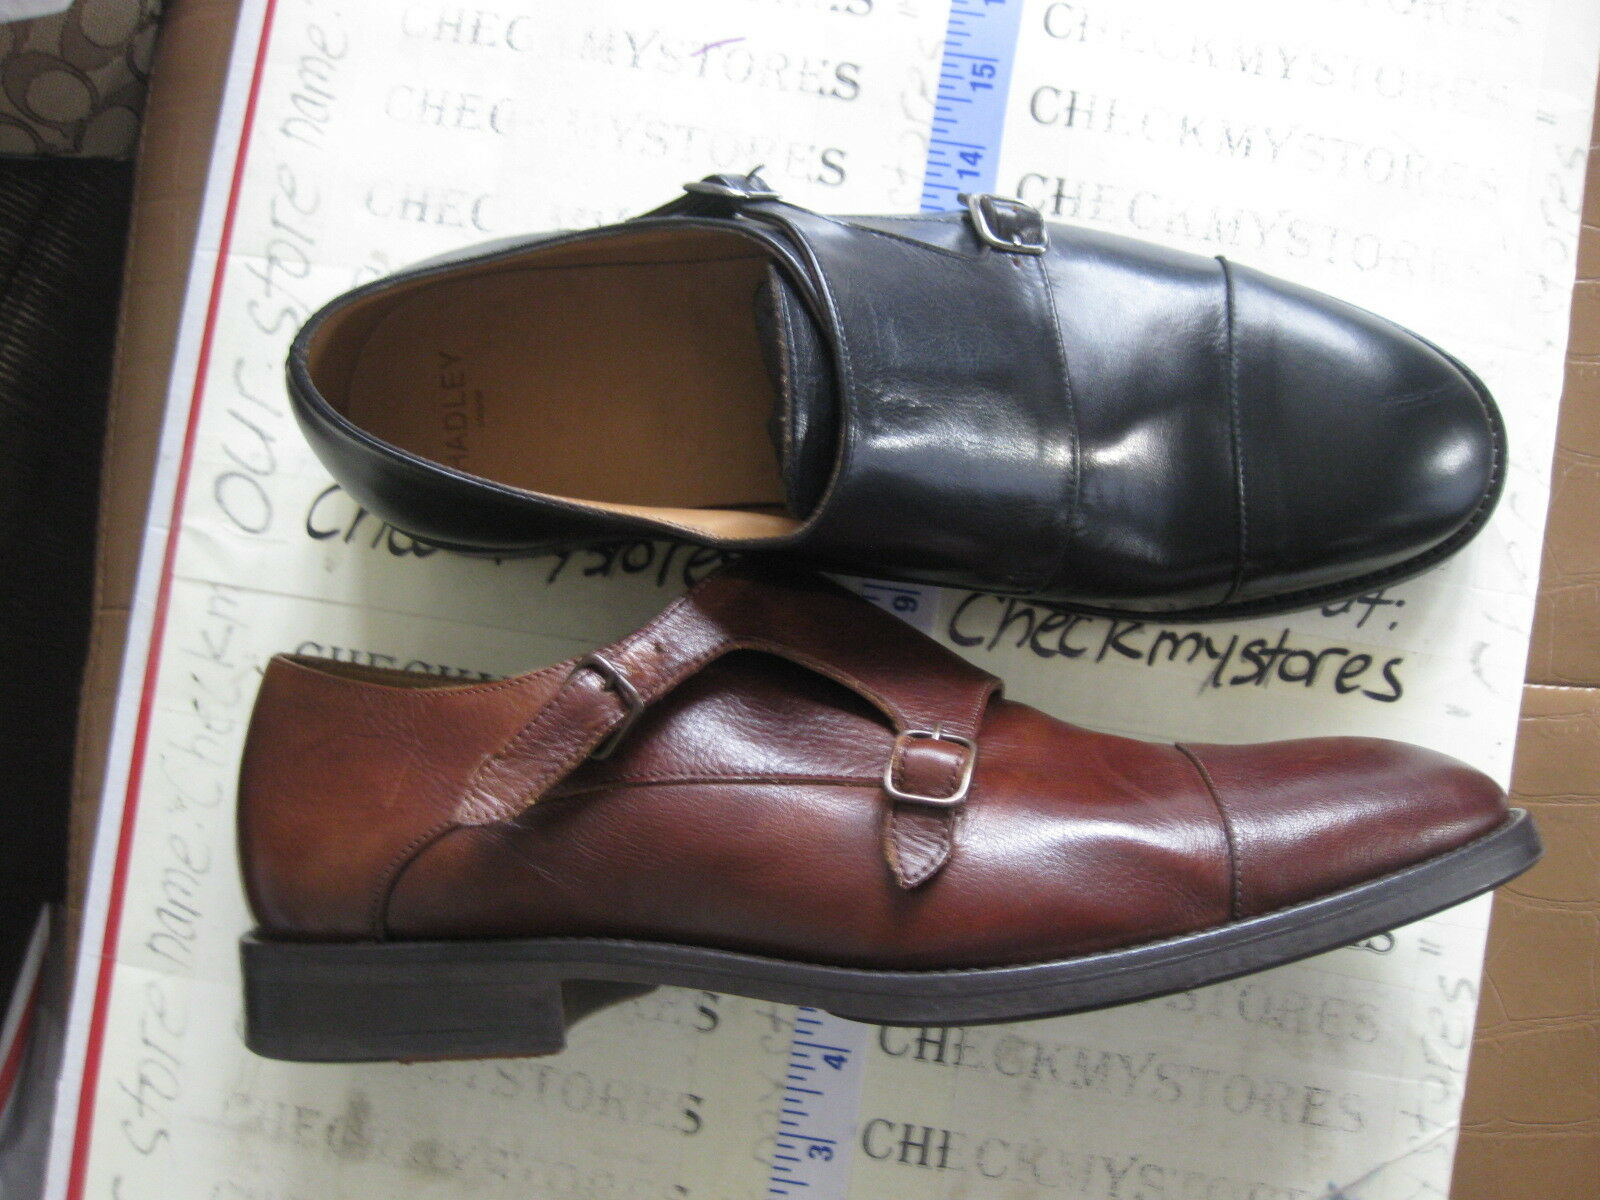 NEW  HADLEY LONDON DOUBLE MONK LEATHER  EUROPEAN DESIGNER SHOES MADE PORTUGAL